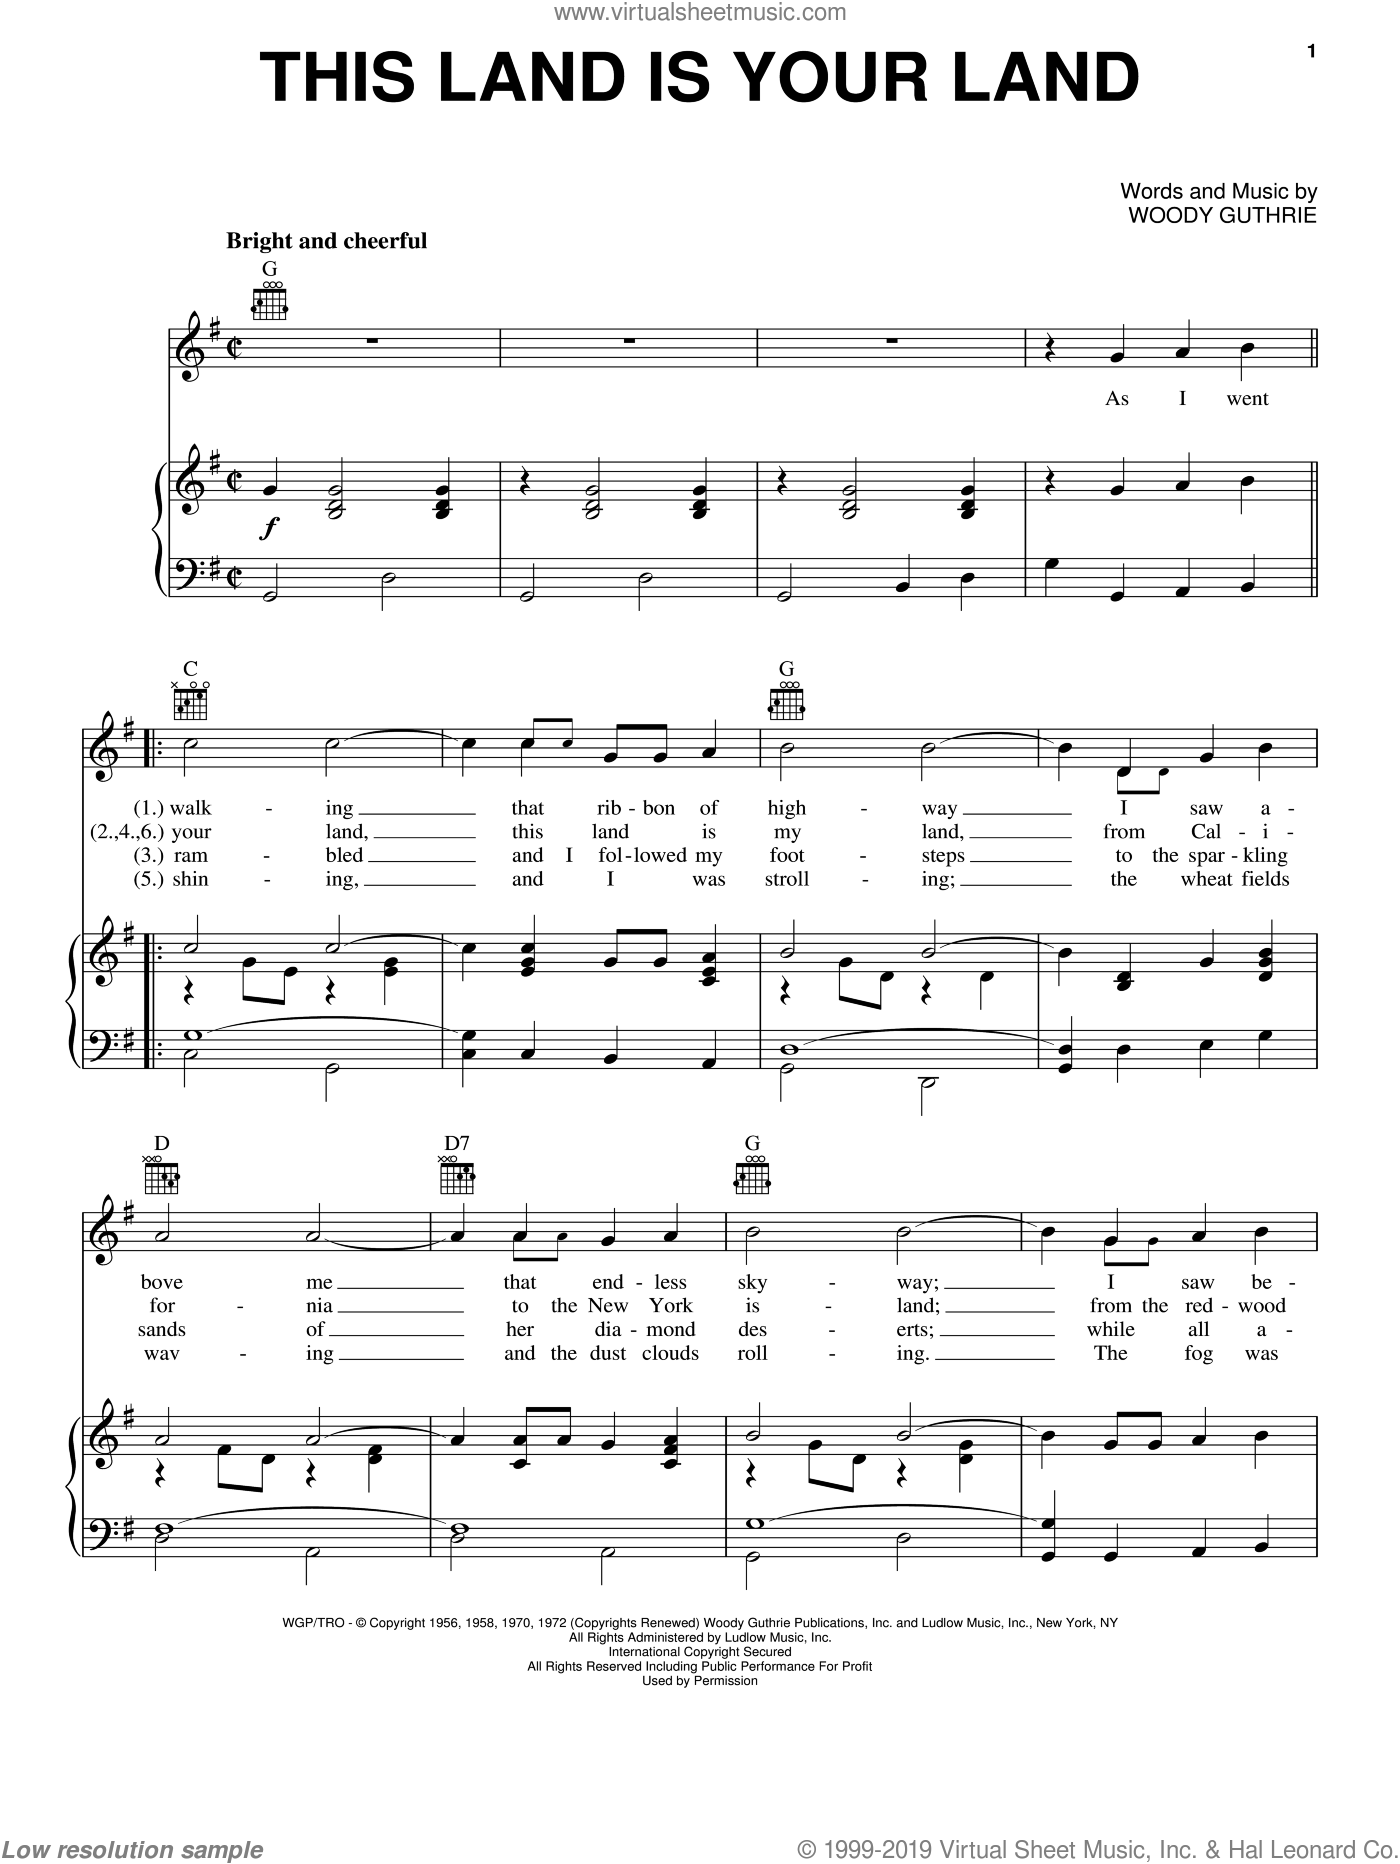 Guthrie - This Land Is Your Land sheet music for voice, piano or guitar